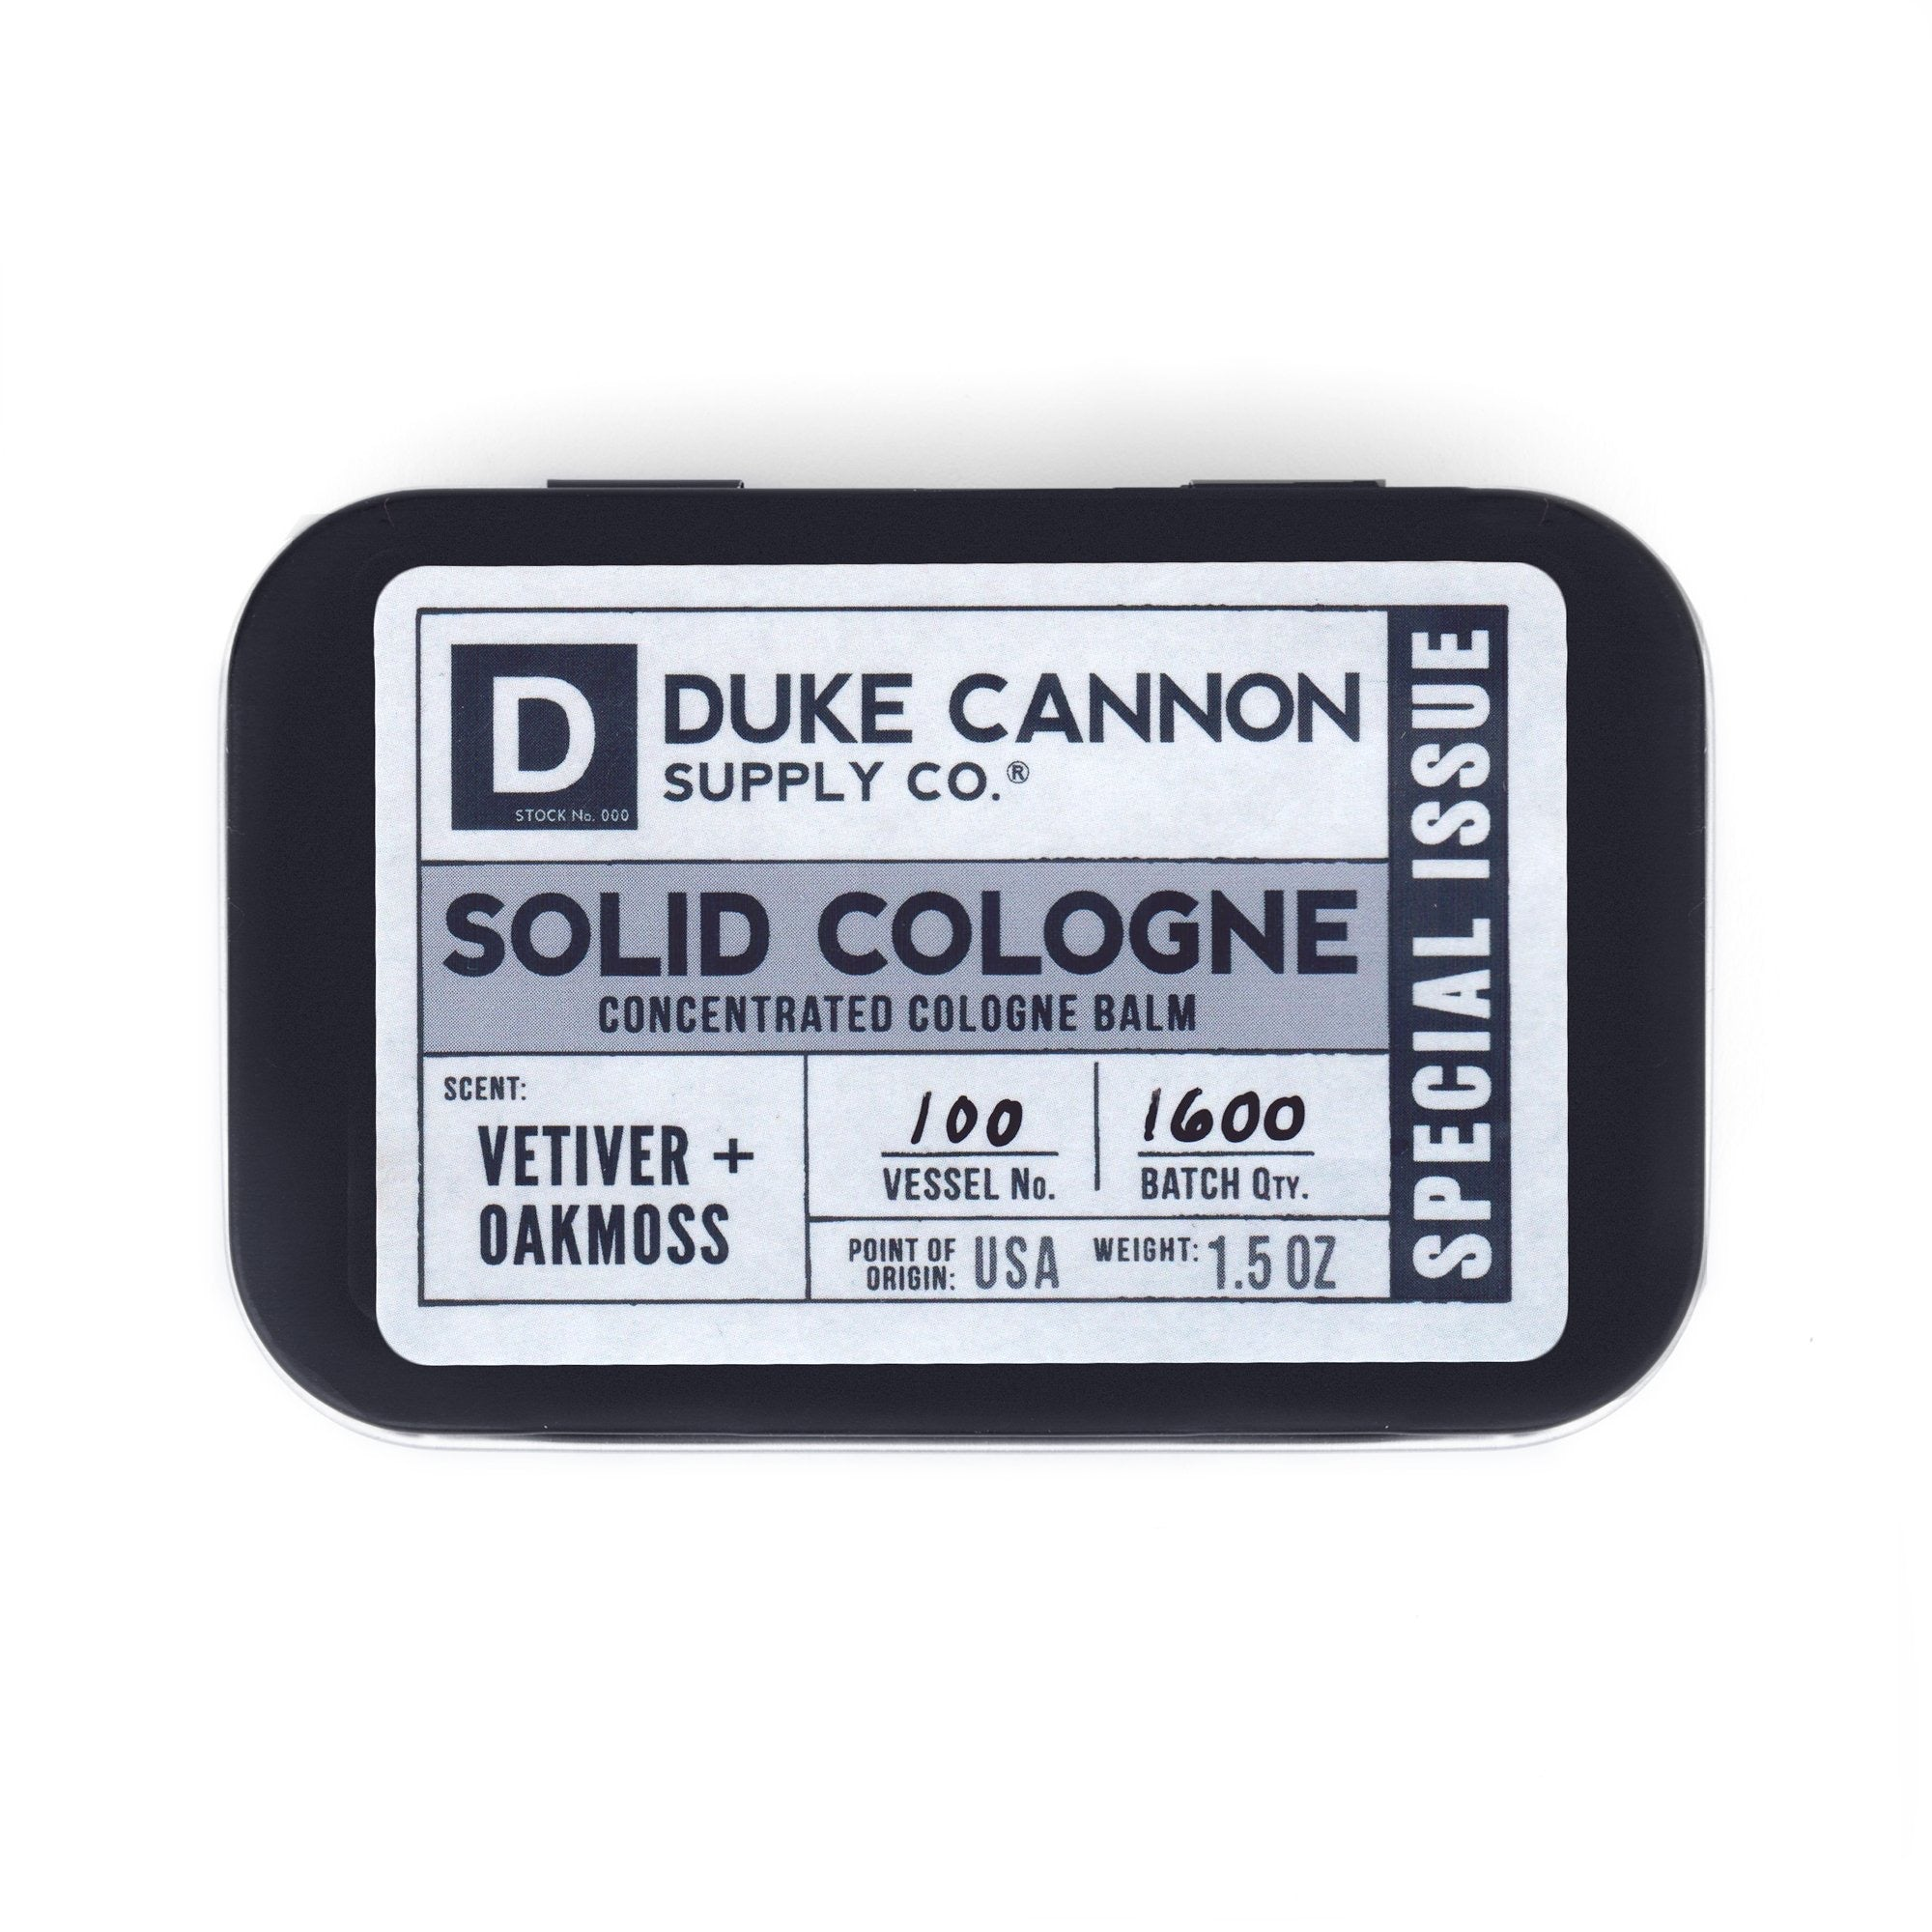 Duke Cannon Solid Cologne - Special Issue Vetiver & Oakmoss